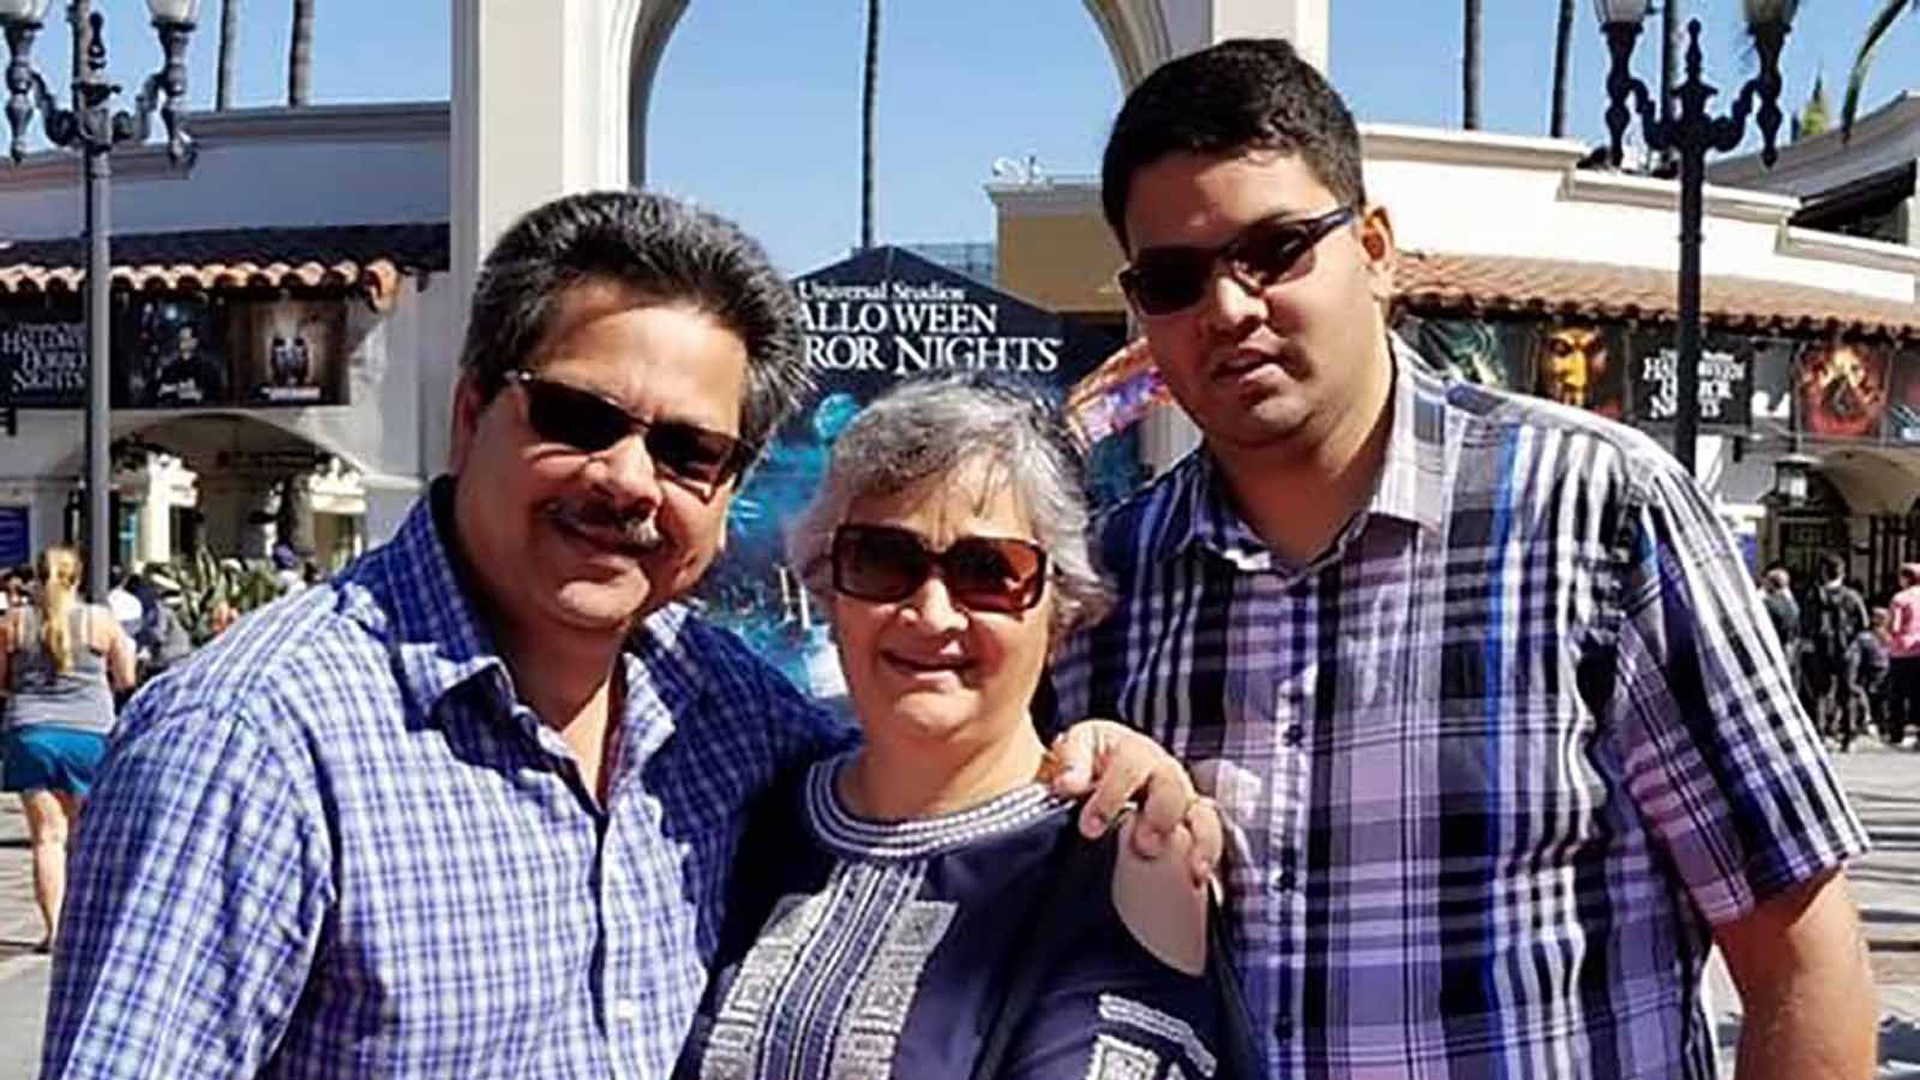 Shooting victim Kenneth French (right) and his parents, Russell and Paola French. (Credit: Courtesy Rick Shureih via CNN Wire)